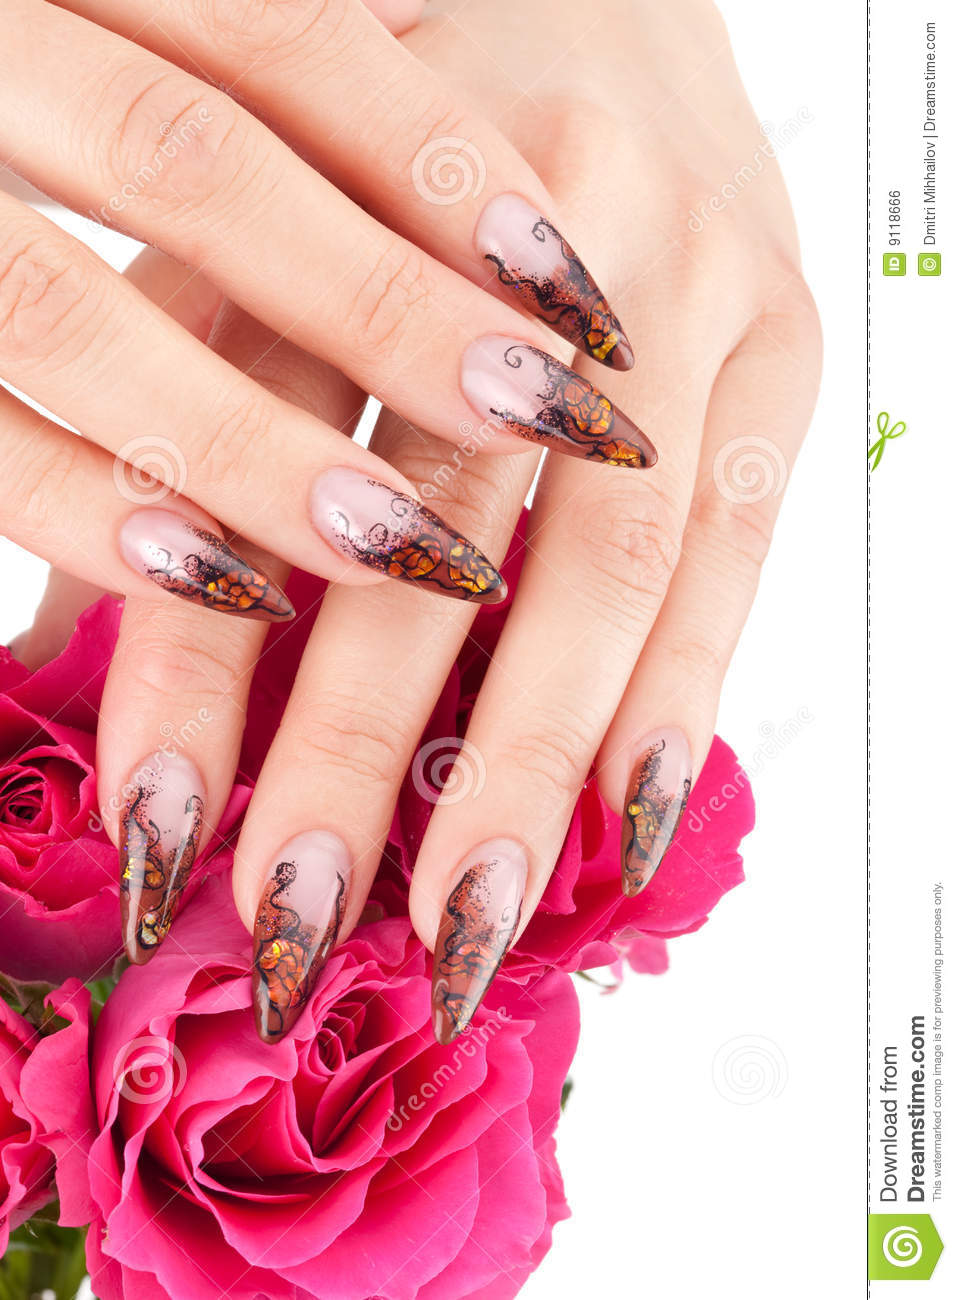 Free pictures of beautiful nails